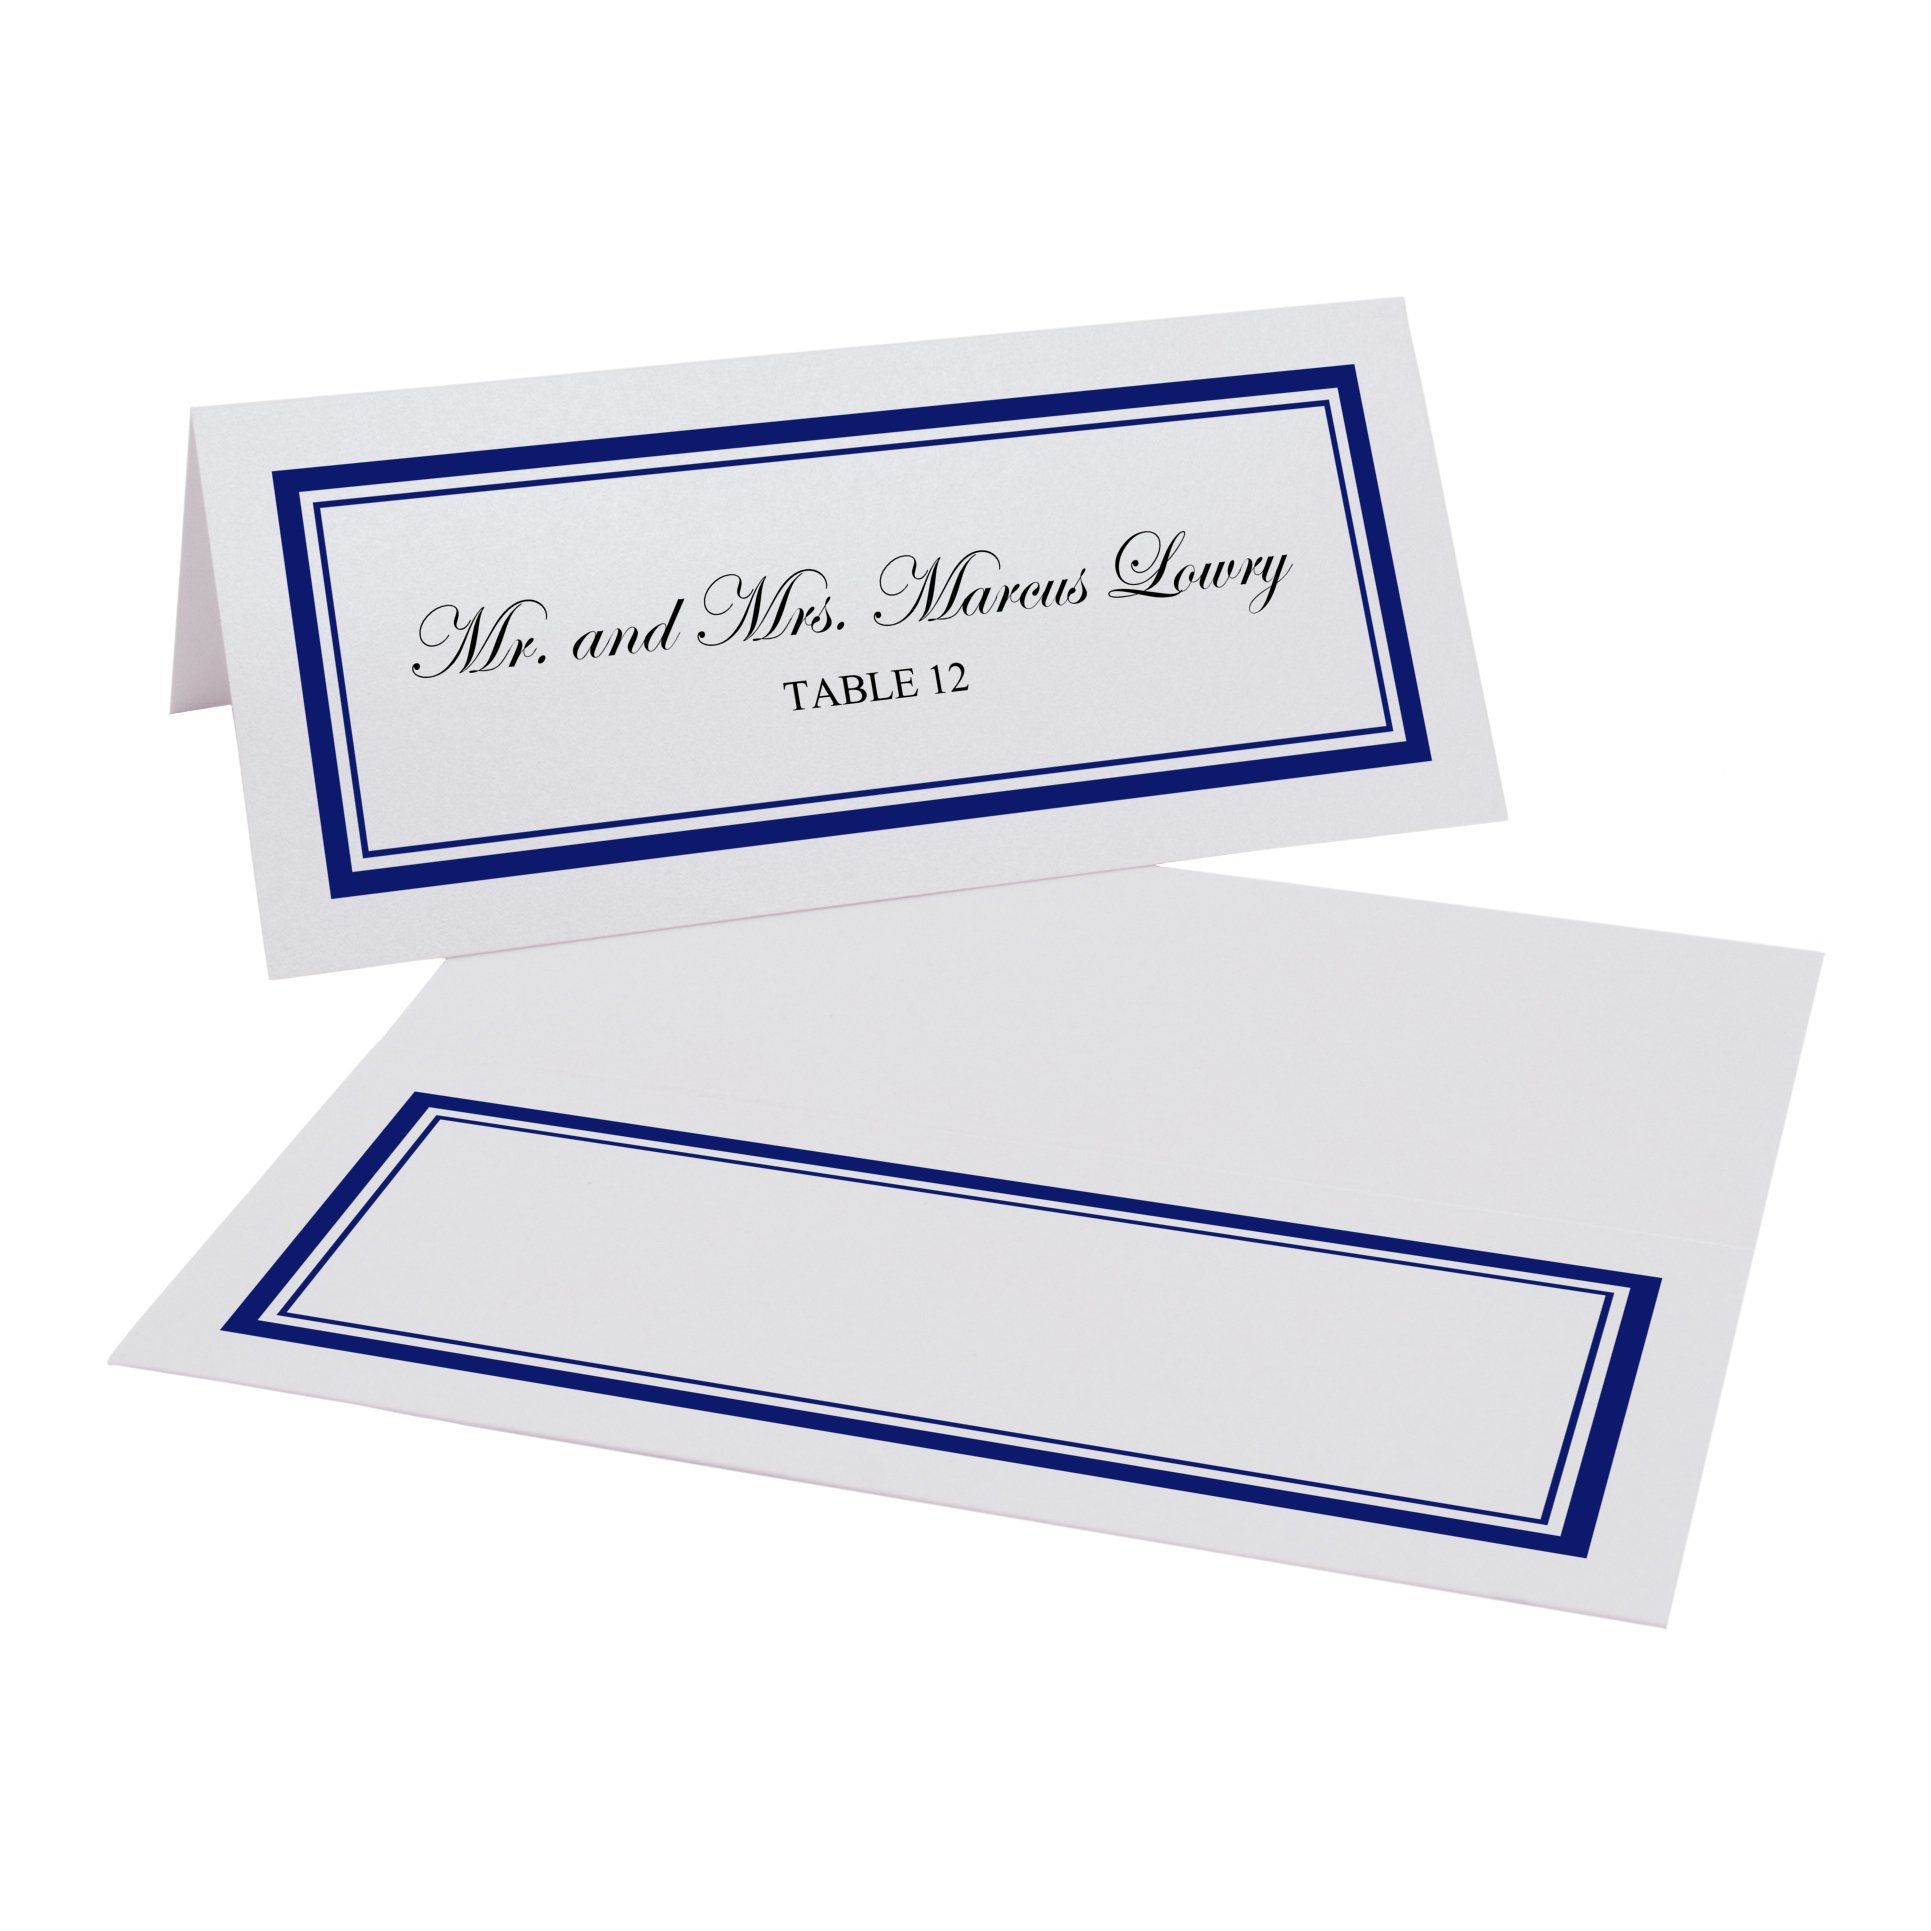 Documents and Designs Double Line Border Easy Print Place Cards (Select Color), Navy, Set of 150 (25 Sheets)